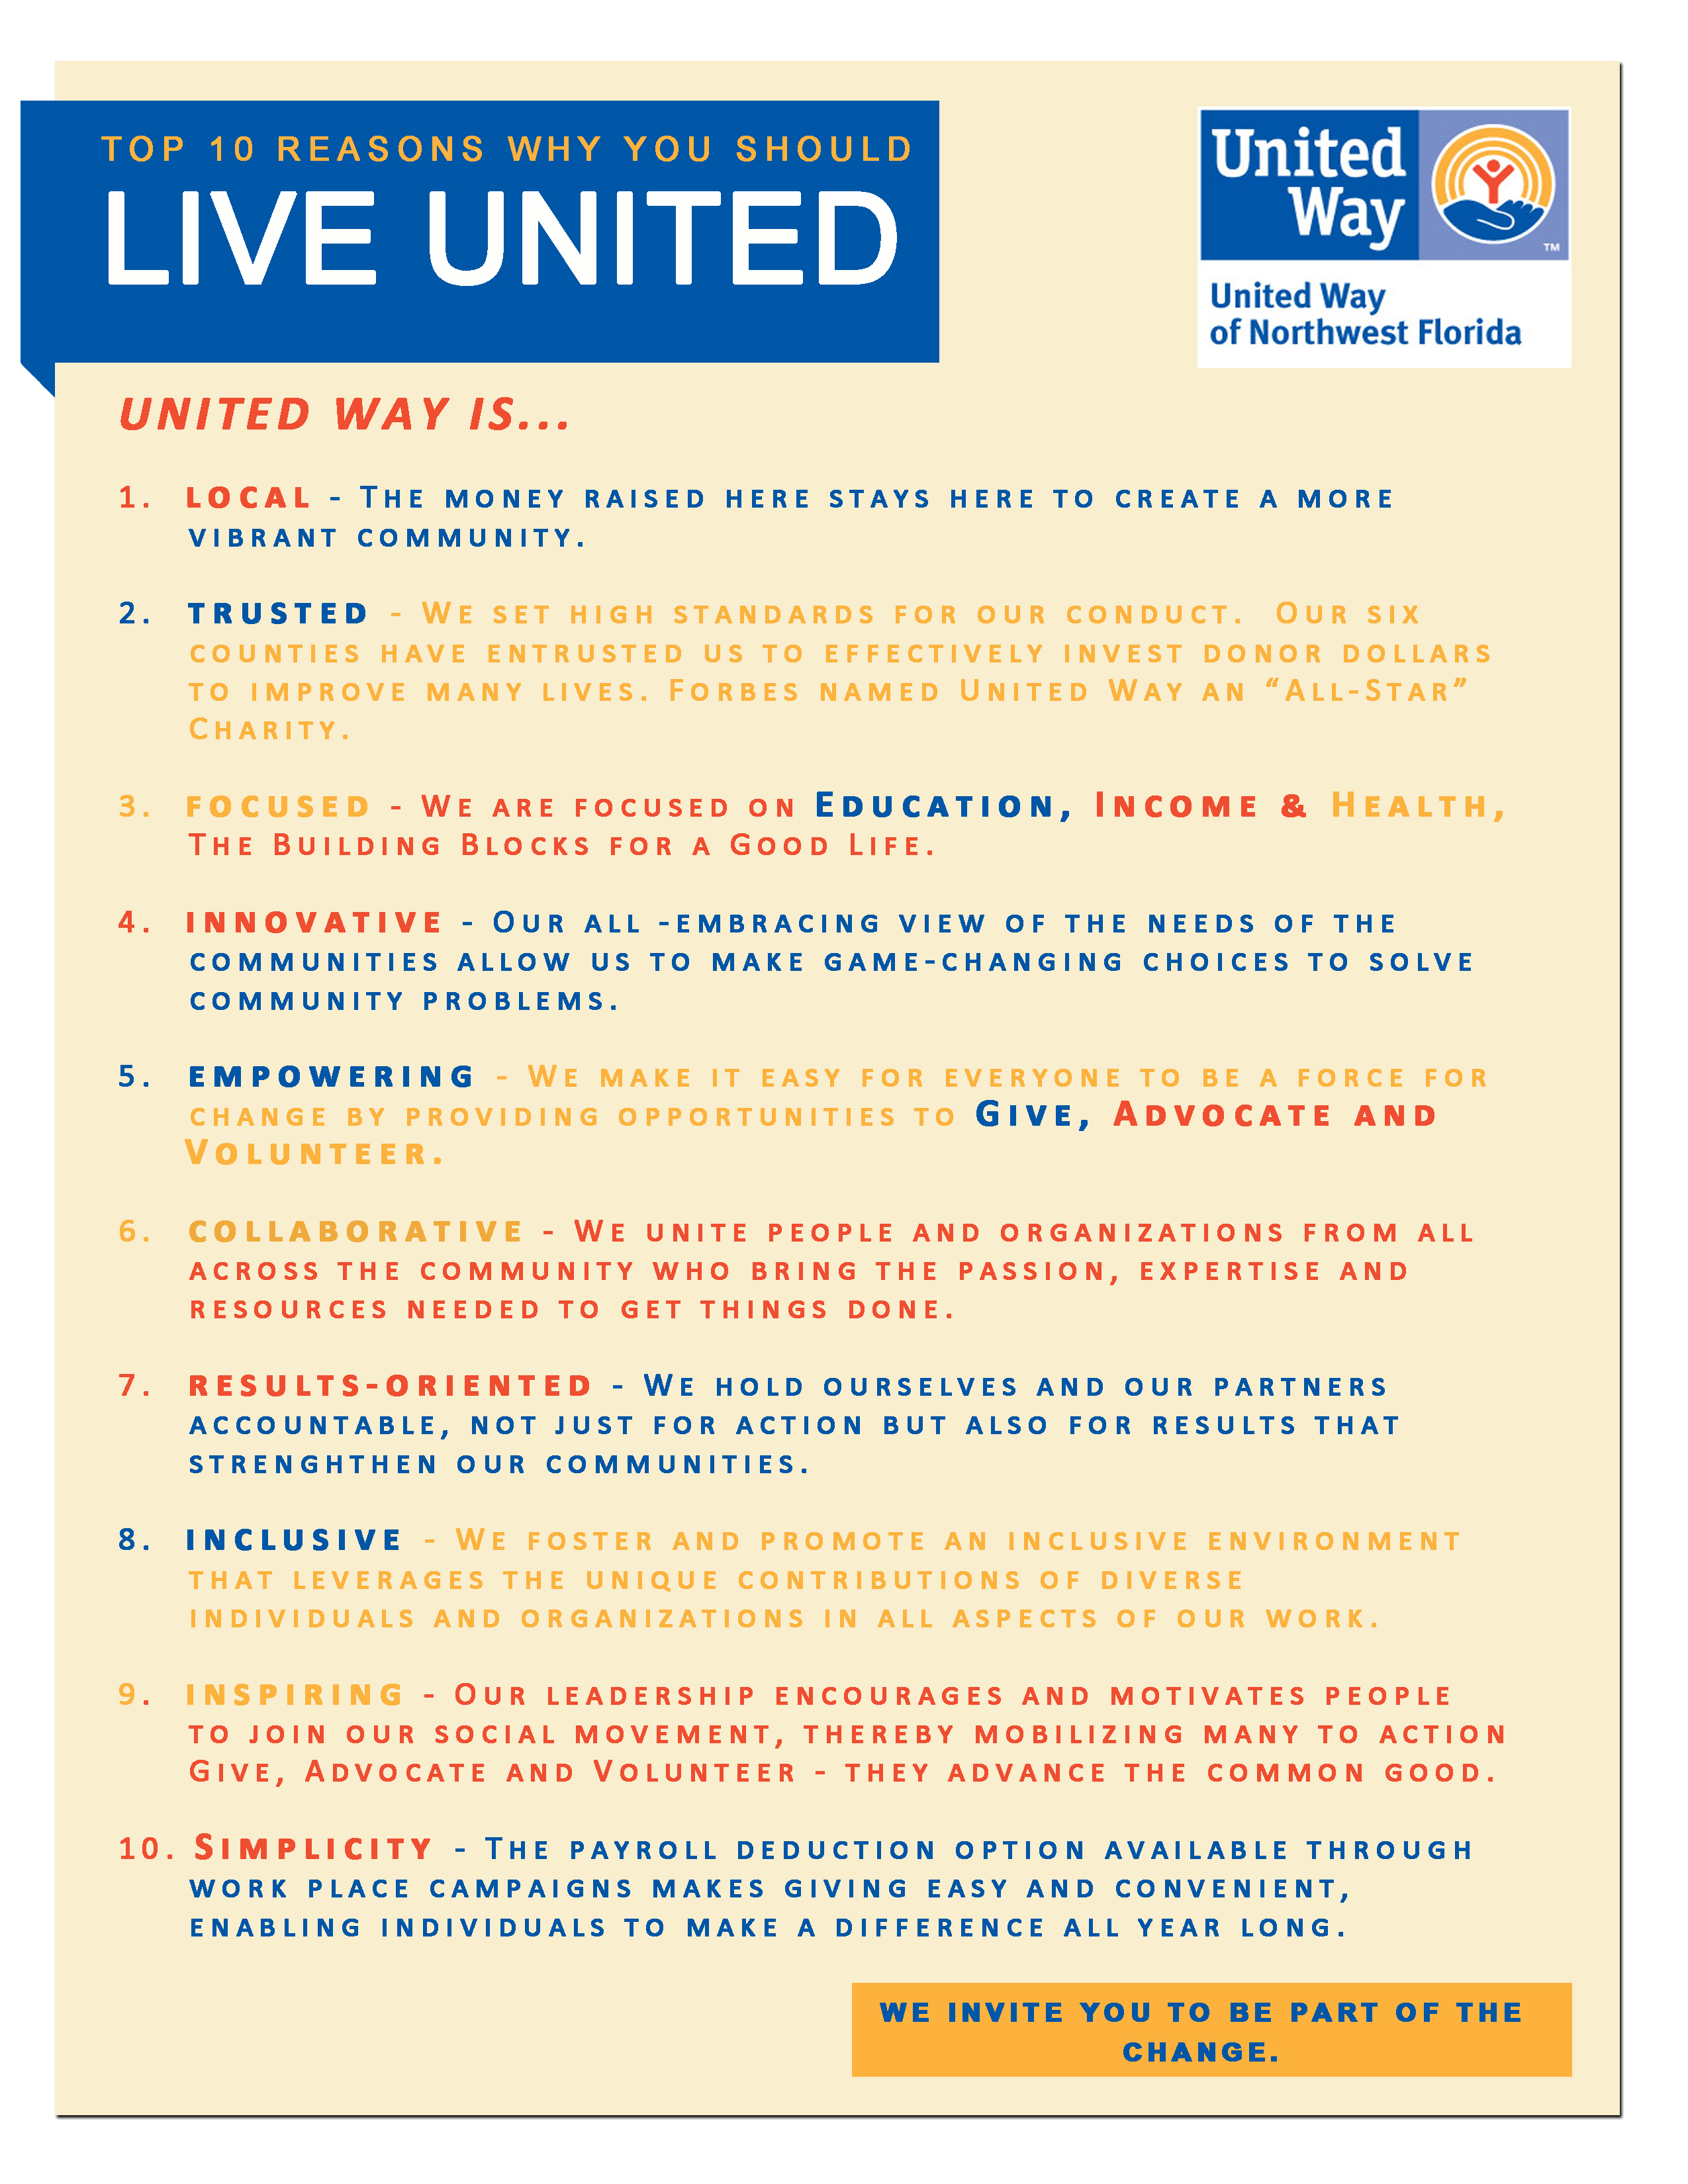 Reasons to invest in united way united way of northwest for Why live in florida